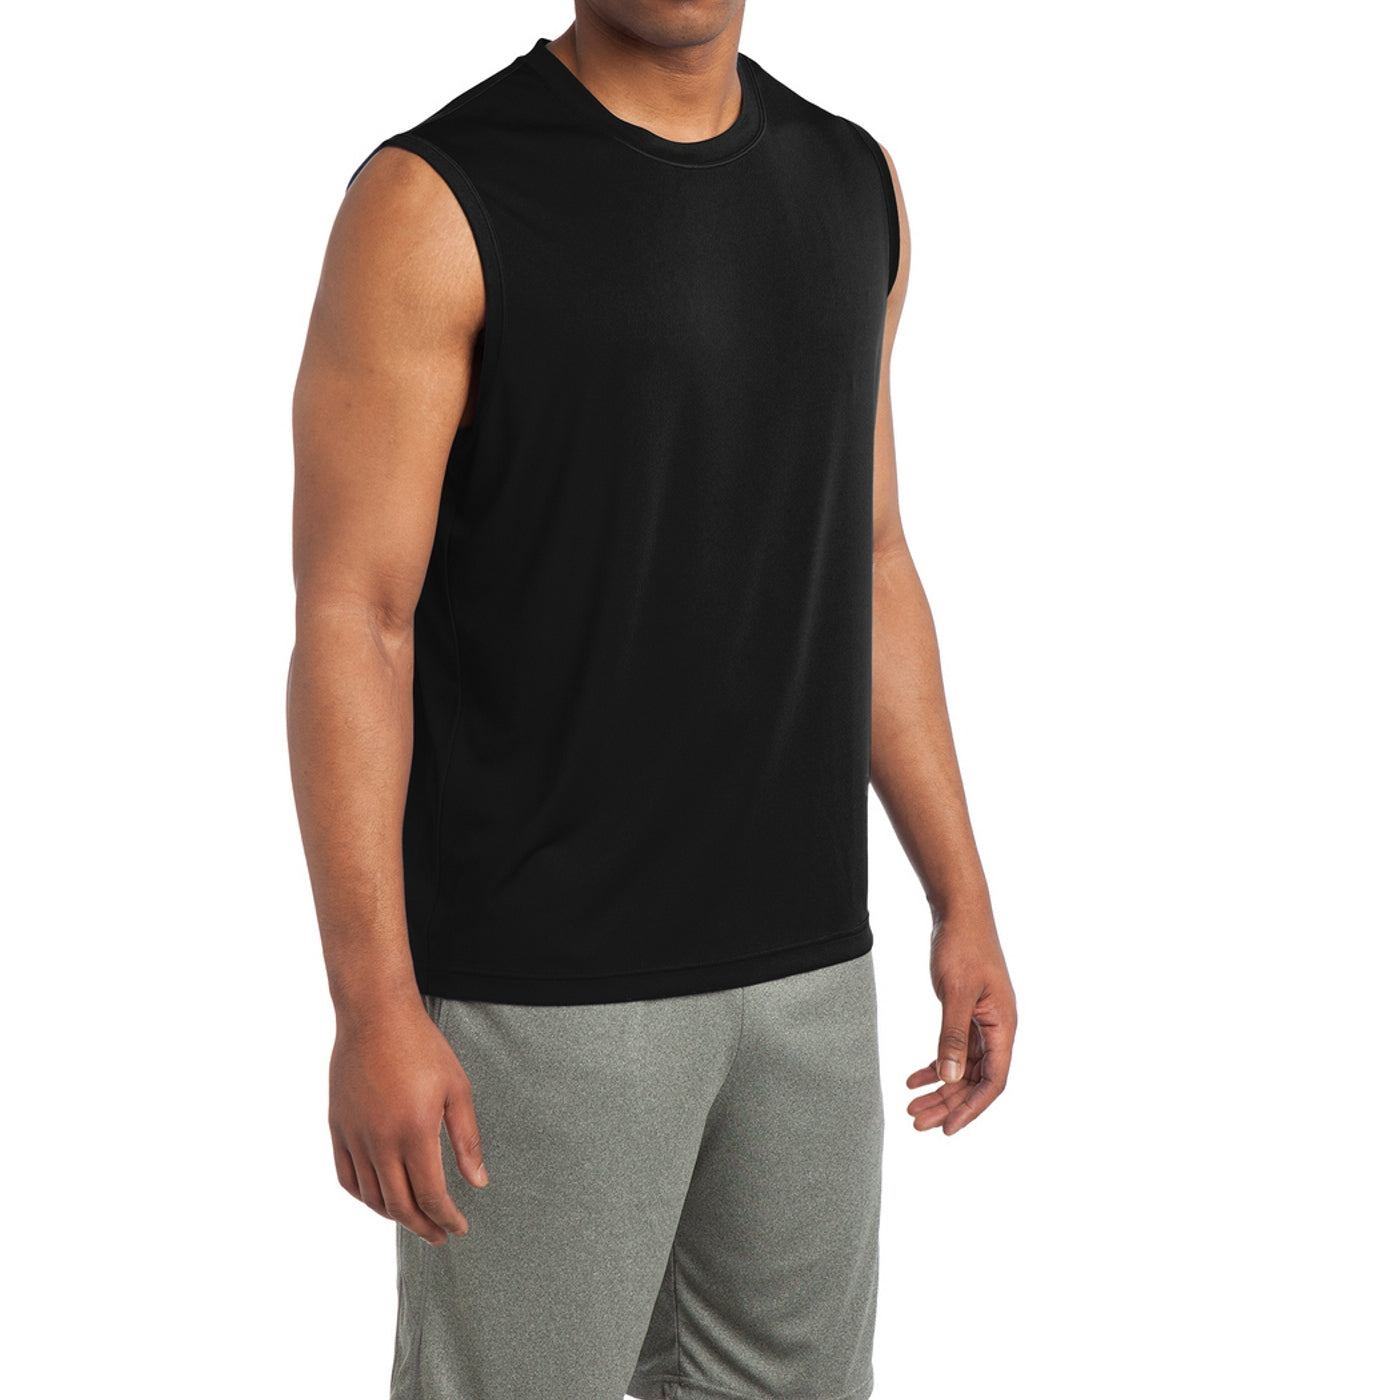 Sleeveless PosiCharge Competitor Tee - Black